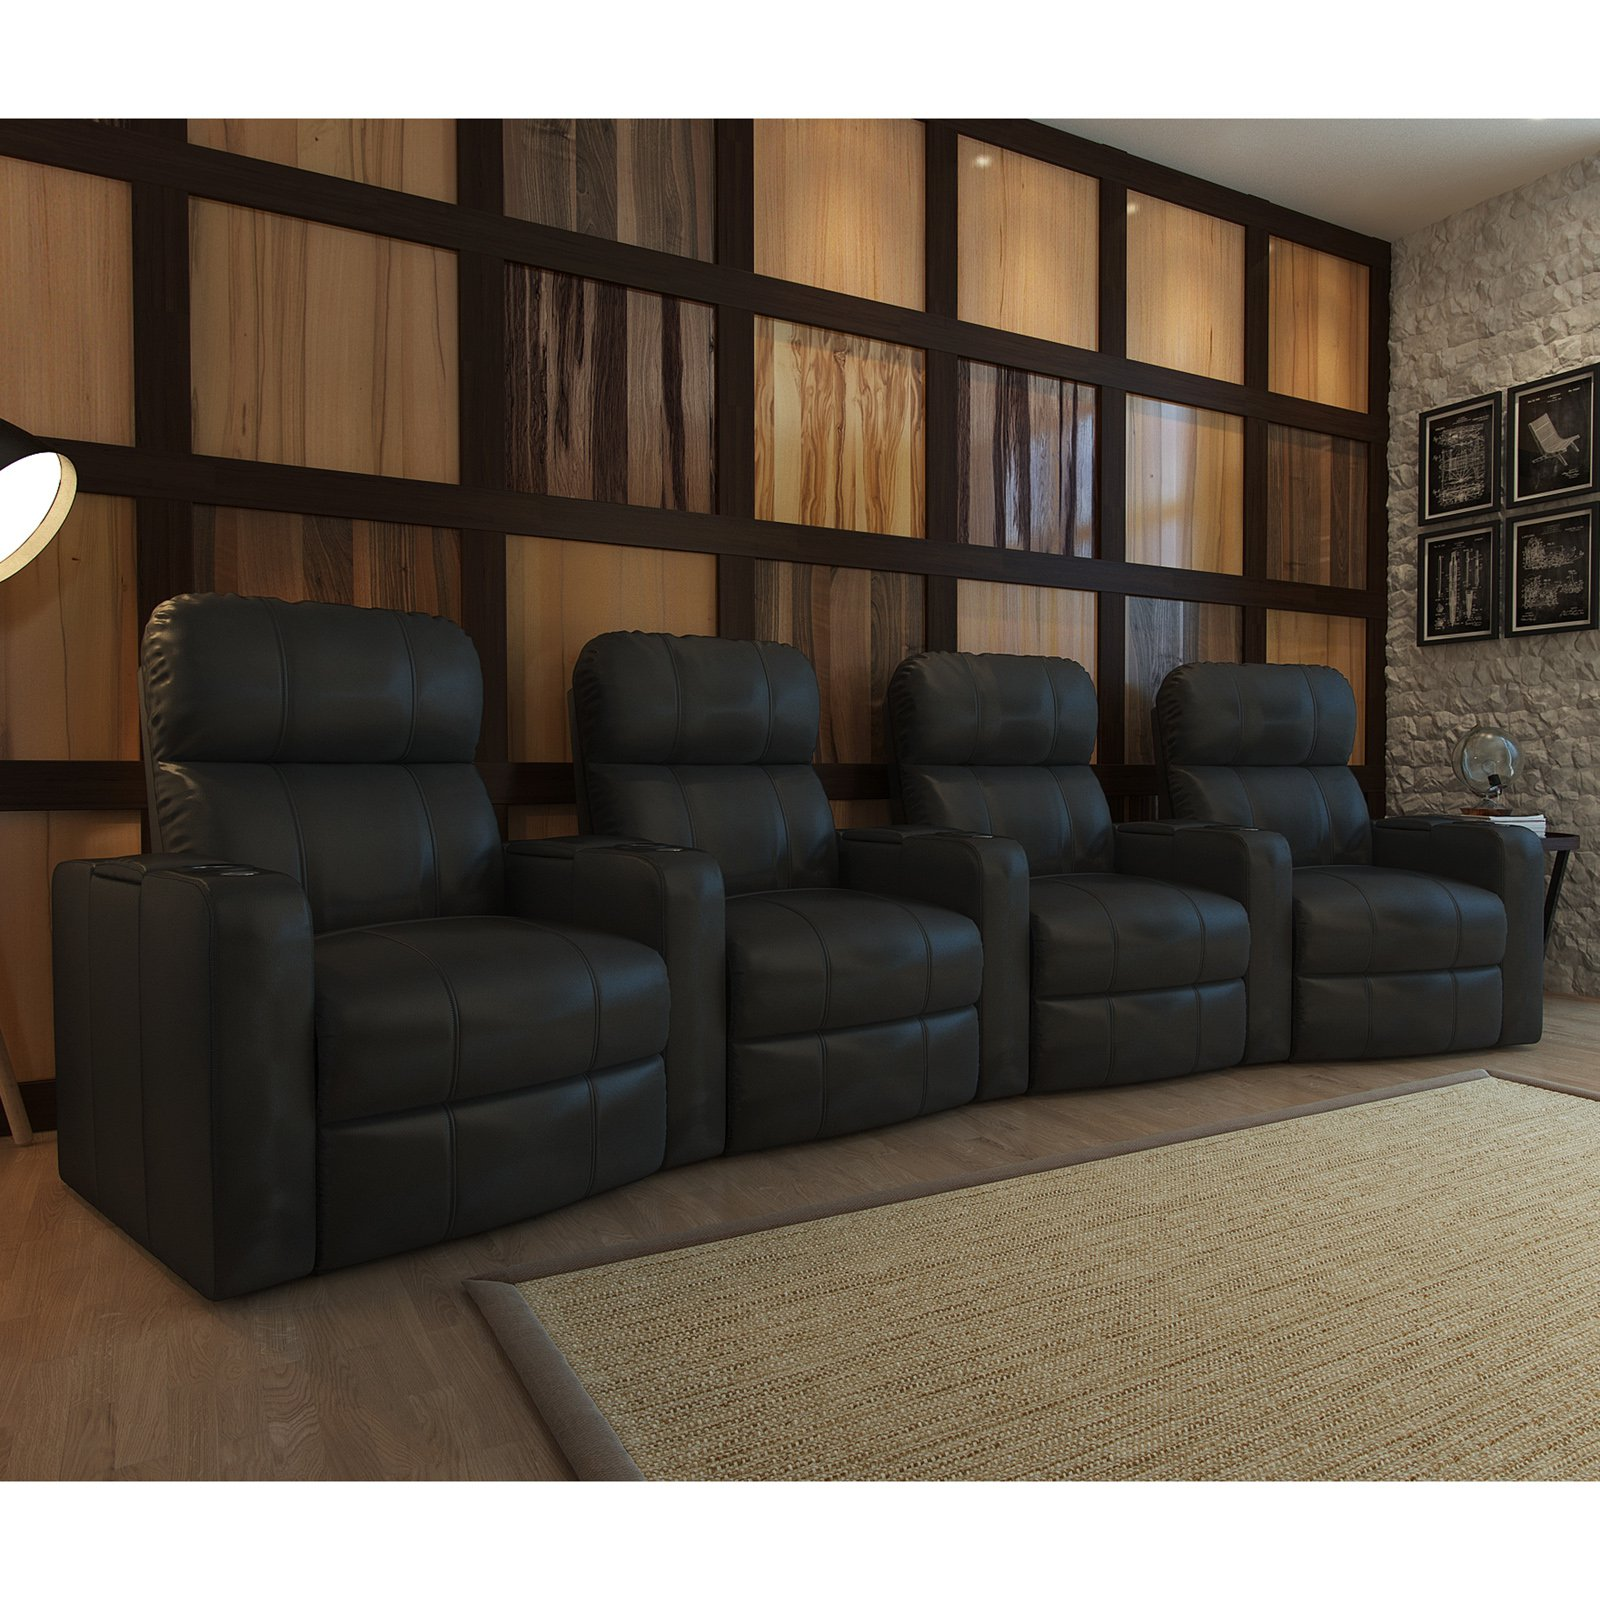 Octane Turbo XL700 4 Seater Curved Bonded Leather Home Theater Seating